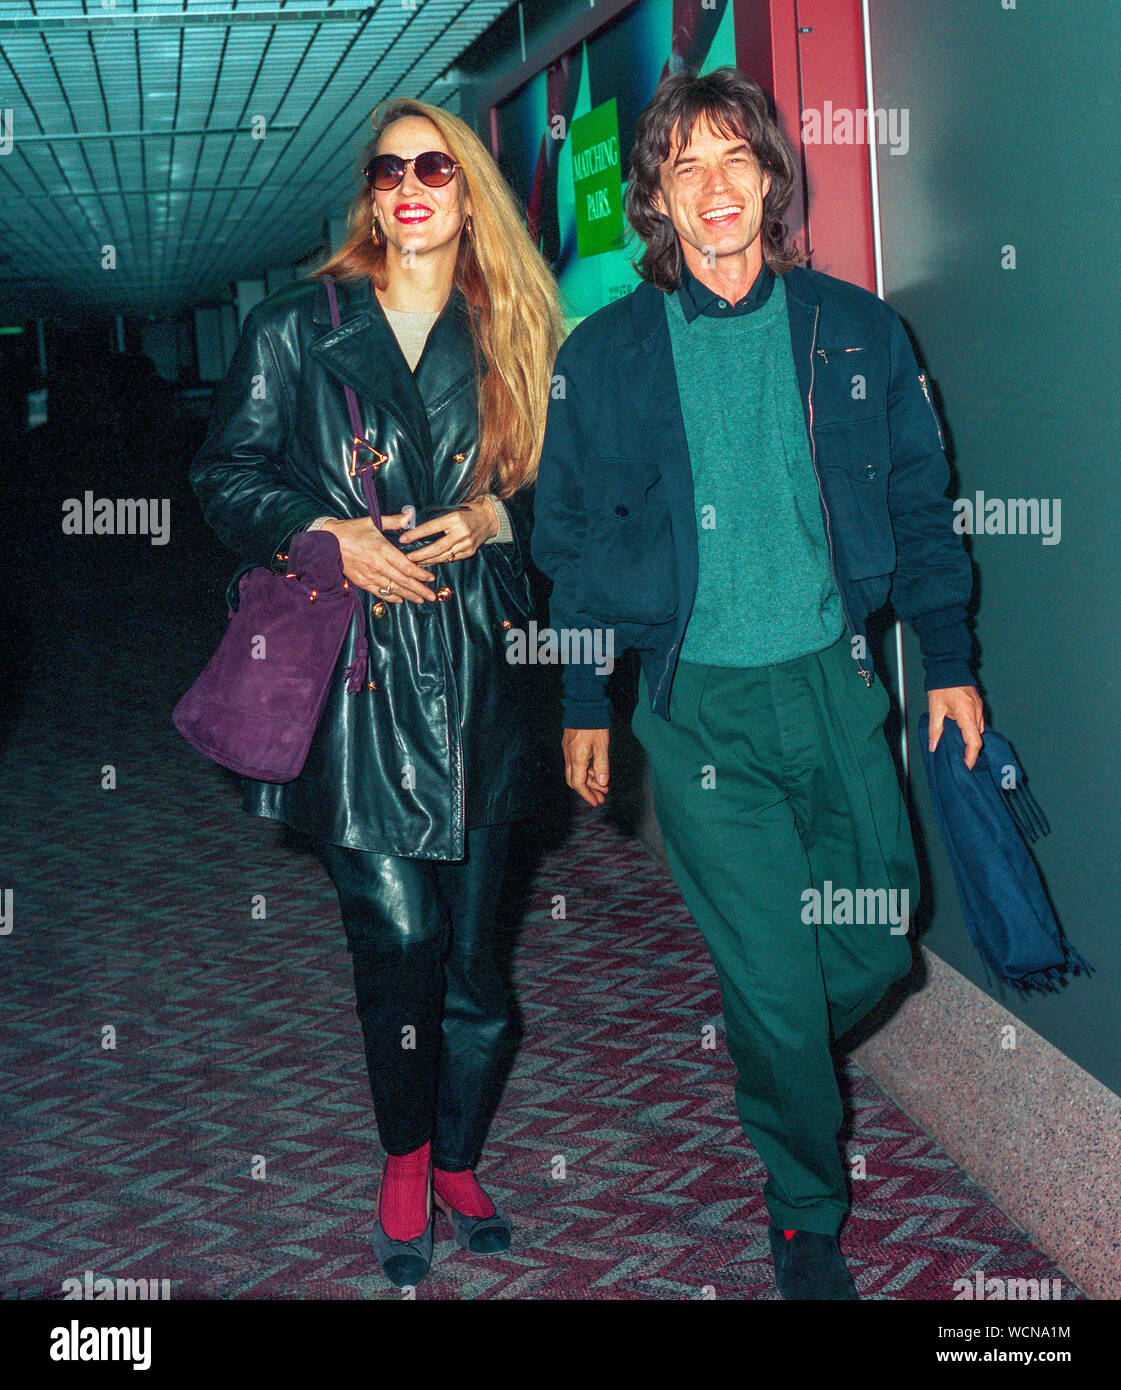 Mick Jagger and Jerry Hall arriving at London's Heathrow Airport in February 1993. Stock Photo